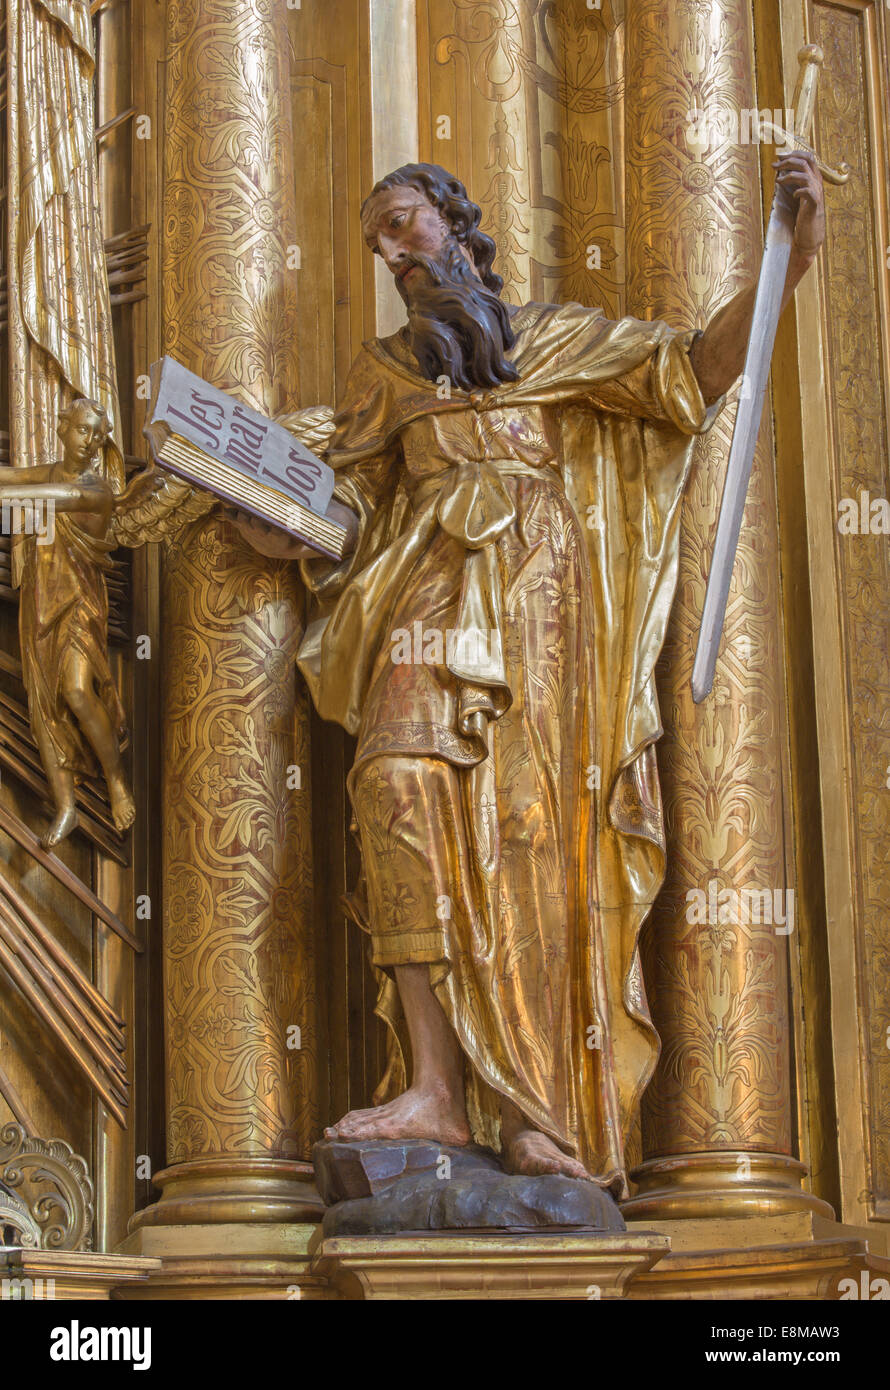 TRNAVA, SLOVAKIA - MARCH 3, 2014: The polychrome statue of saint Paul the apostle in the Jesuits church. - Stock Image